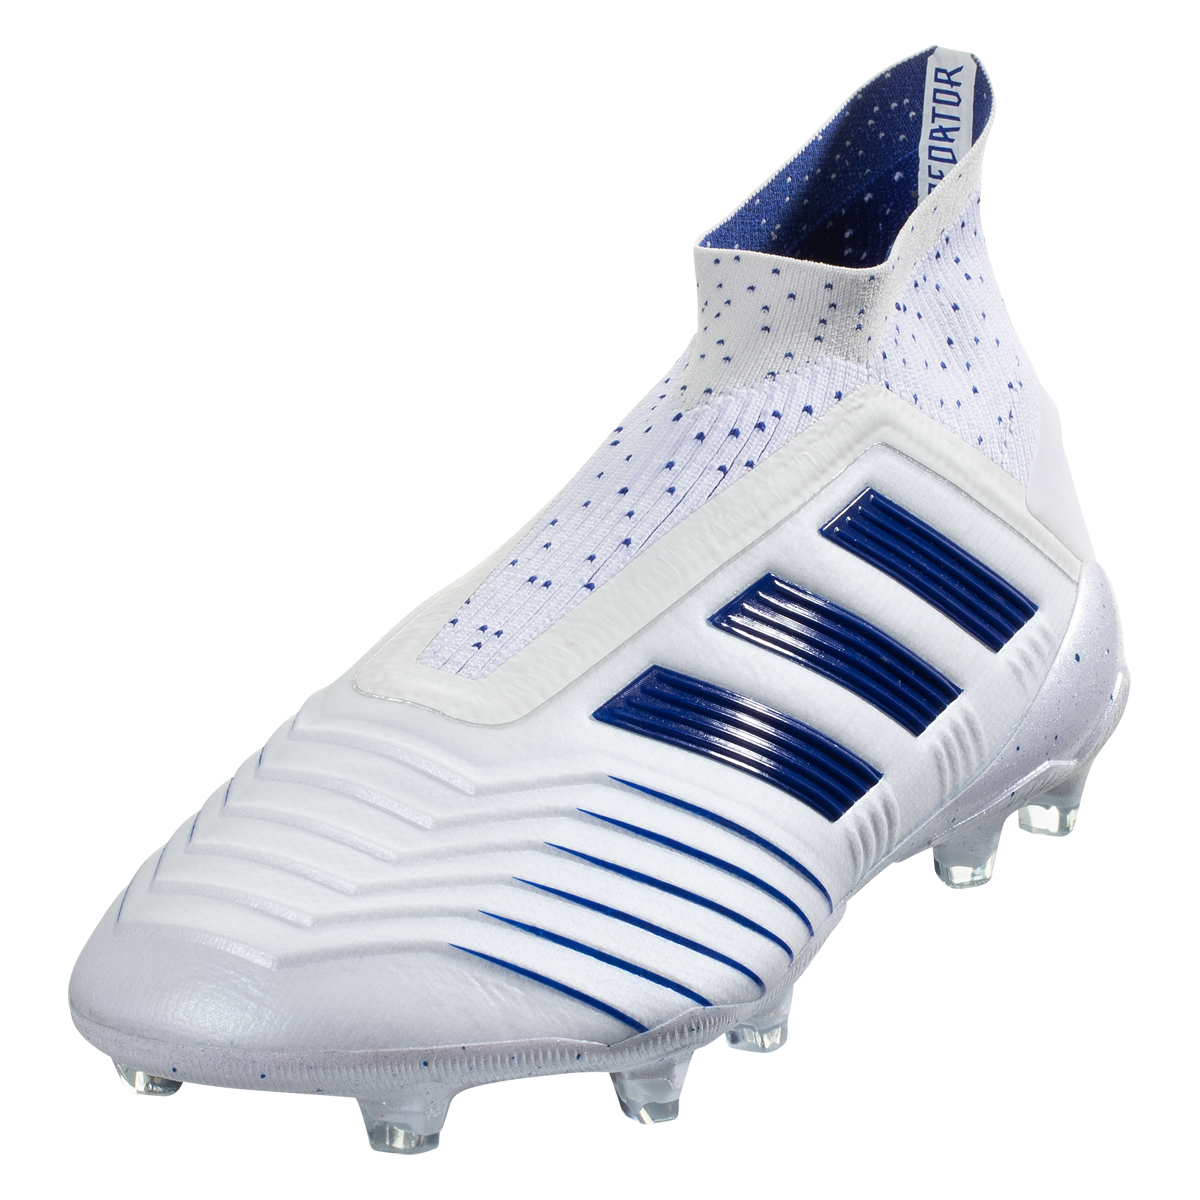 FG Firm Ground Soccer Cleat White/Blue